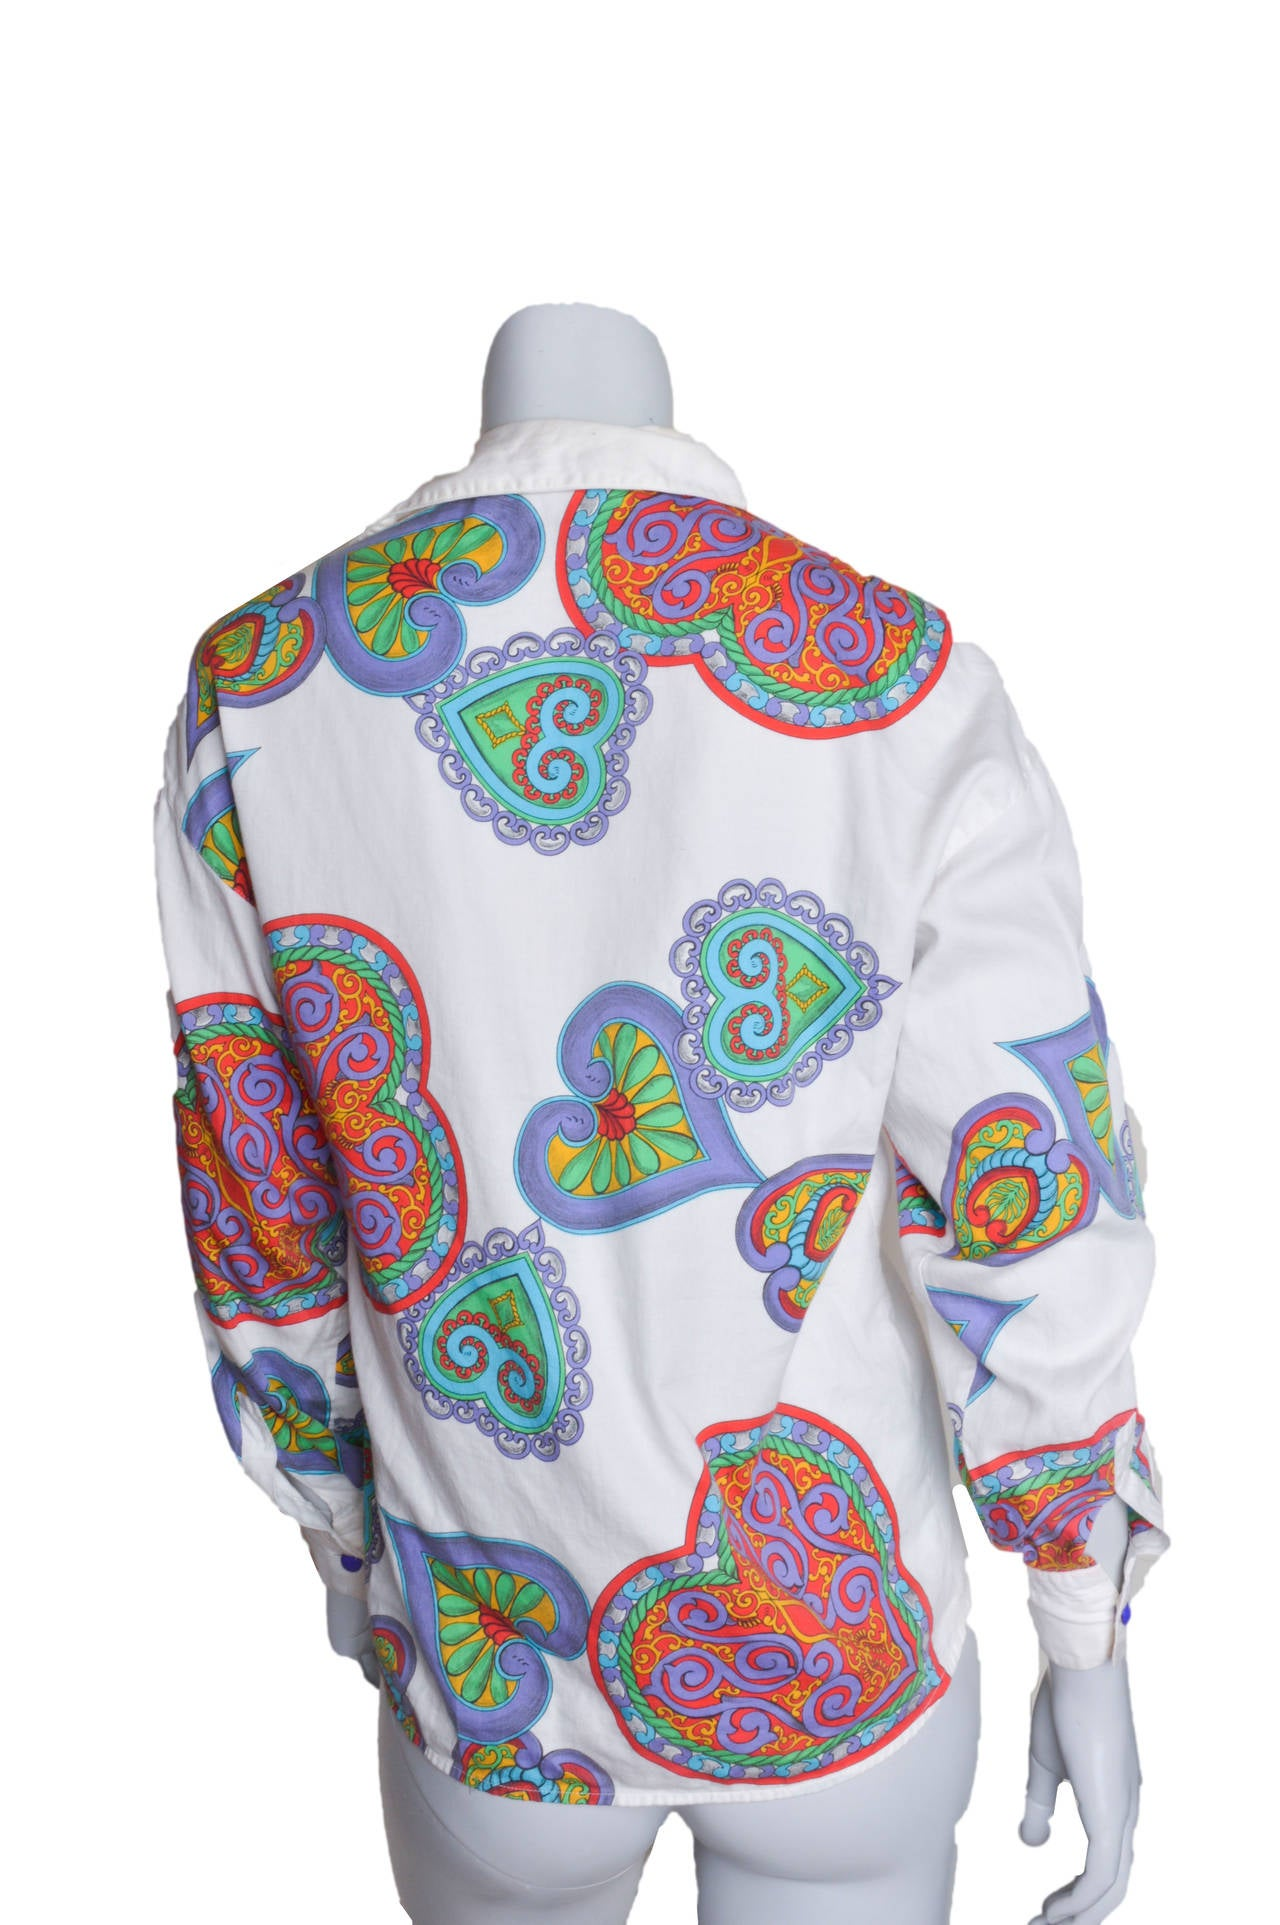 Versace Versus Scarf Print Hearts Blouse In Excellent Condition For Sale In San Francisco, CA